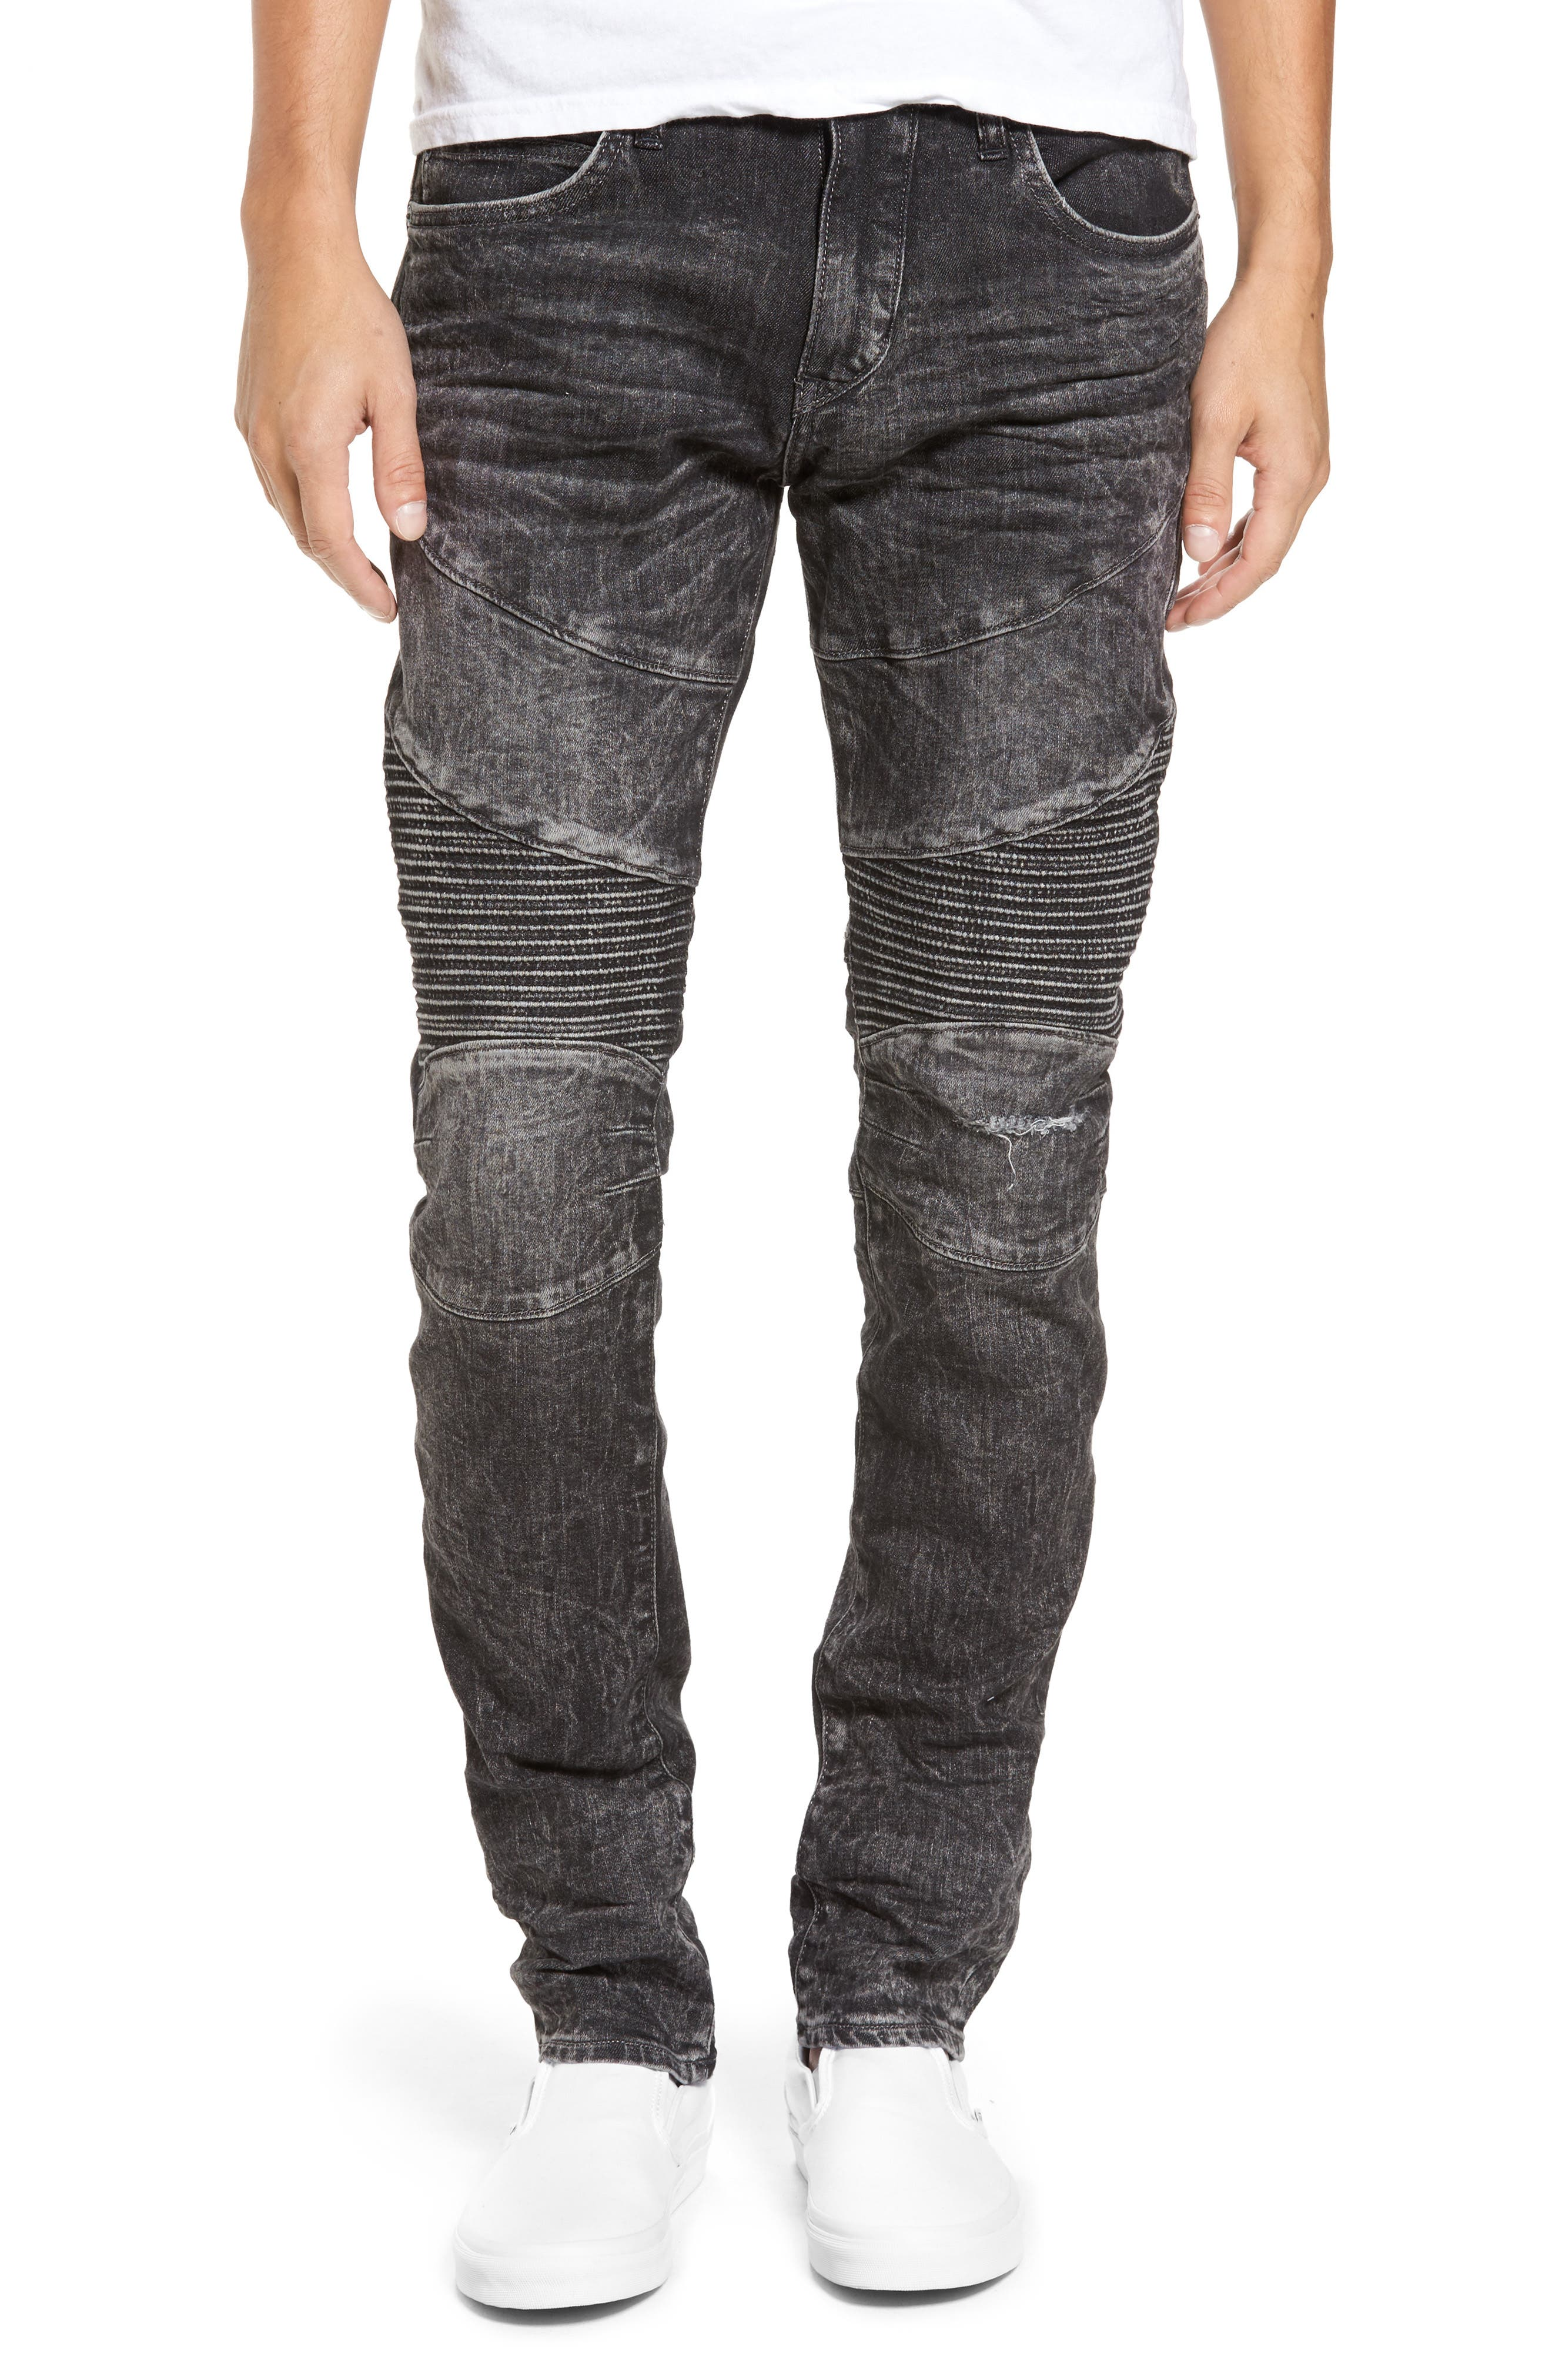 Rocco Skinny Fit Jeans,                         Main,                         color, Dark Raven